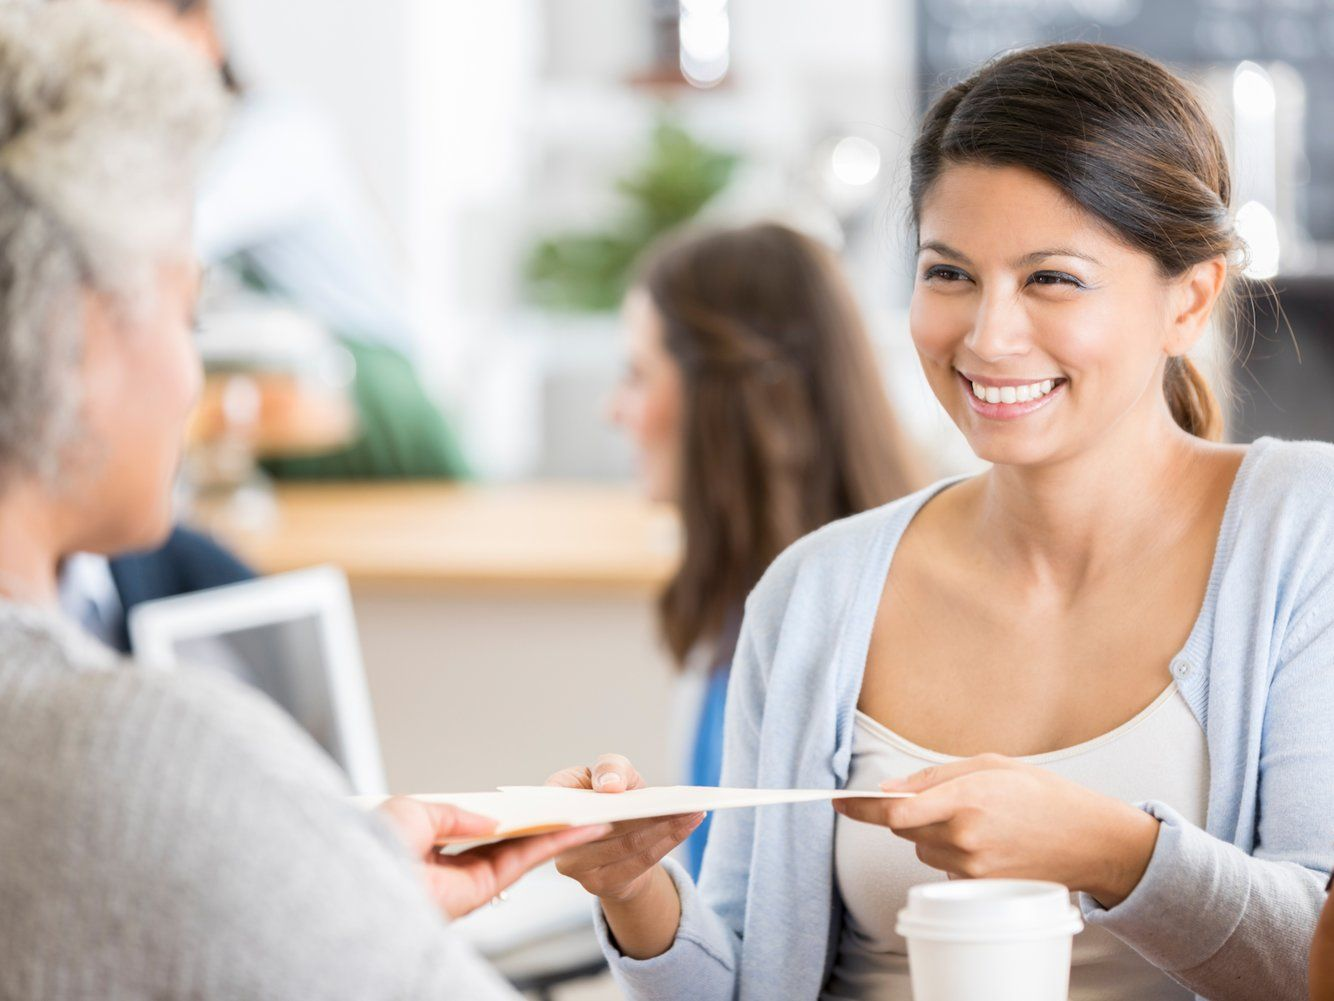 Impress a Potential Employer In an Interview With These 3